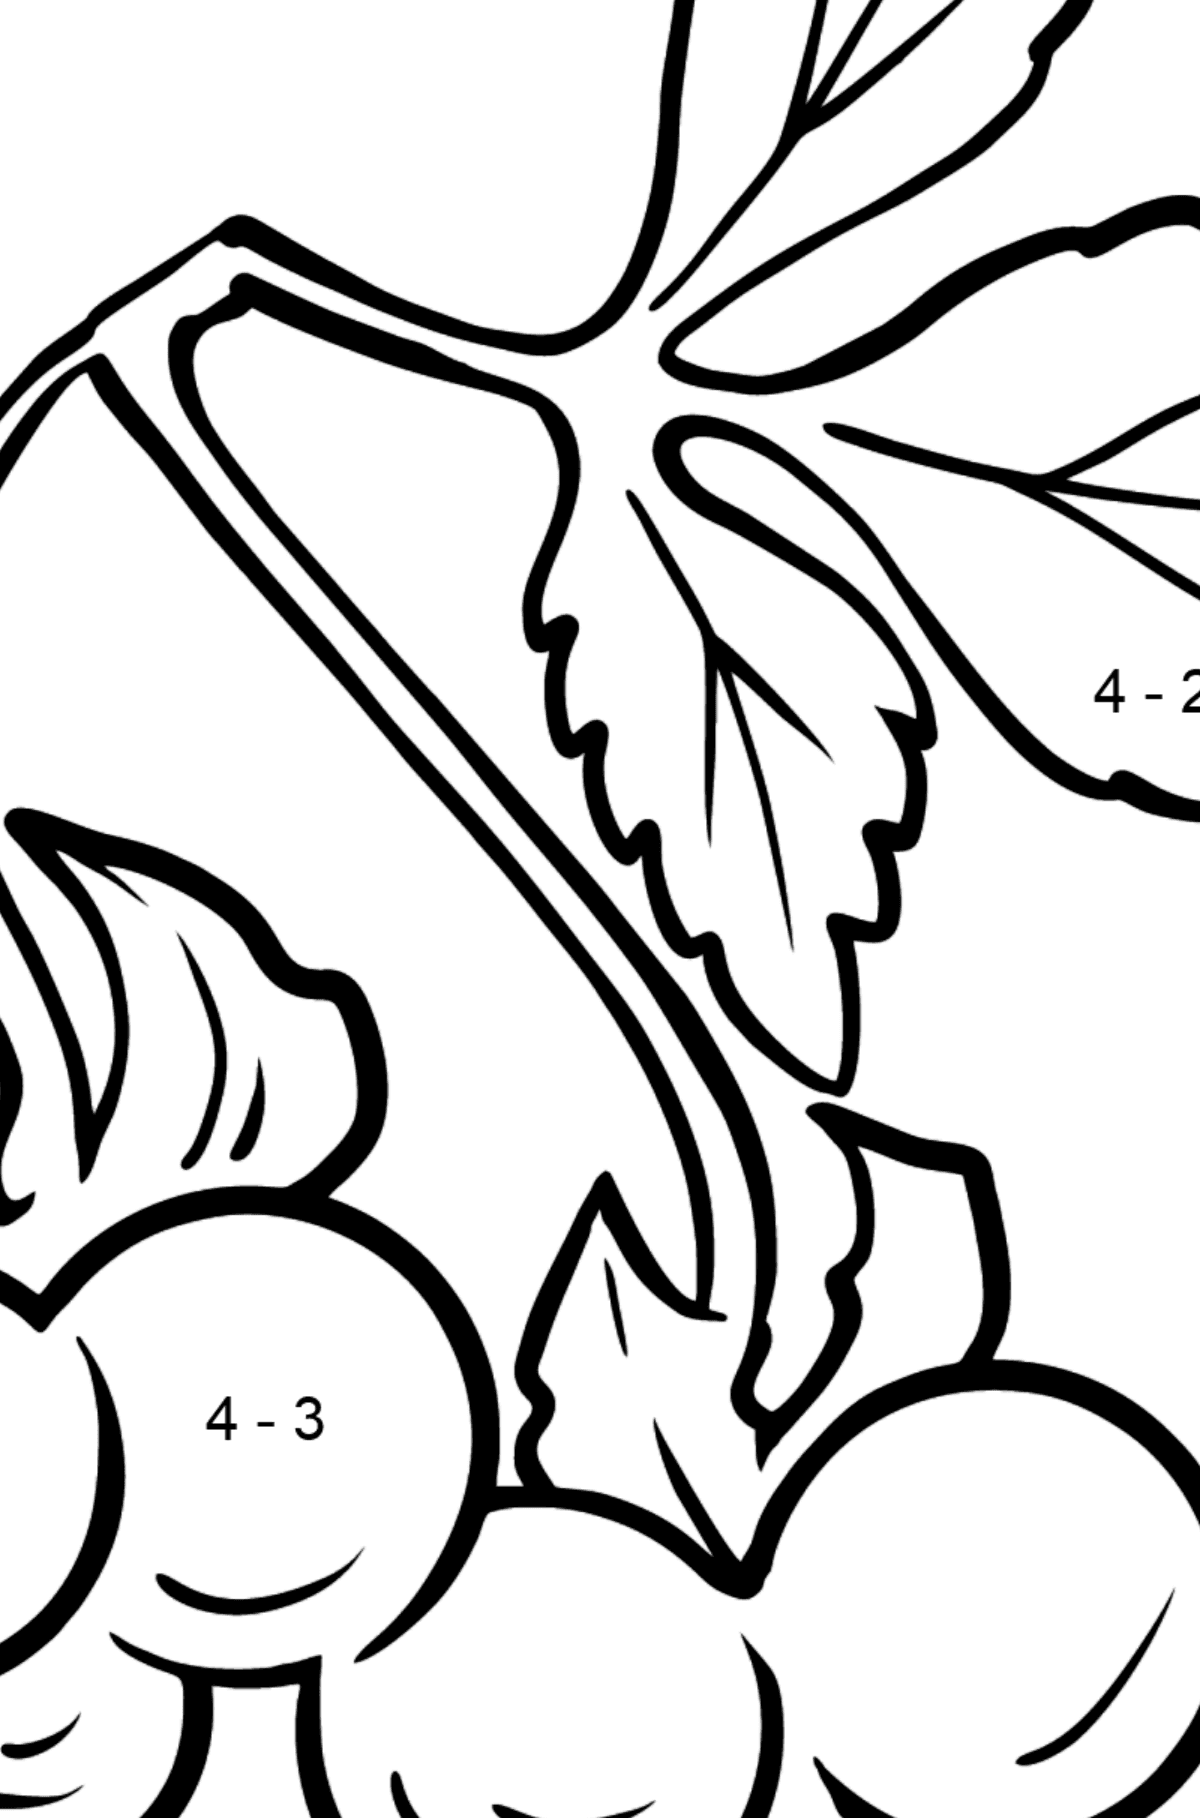 Blackberry coloring page - Math Coloring - Subtraction for Kids